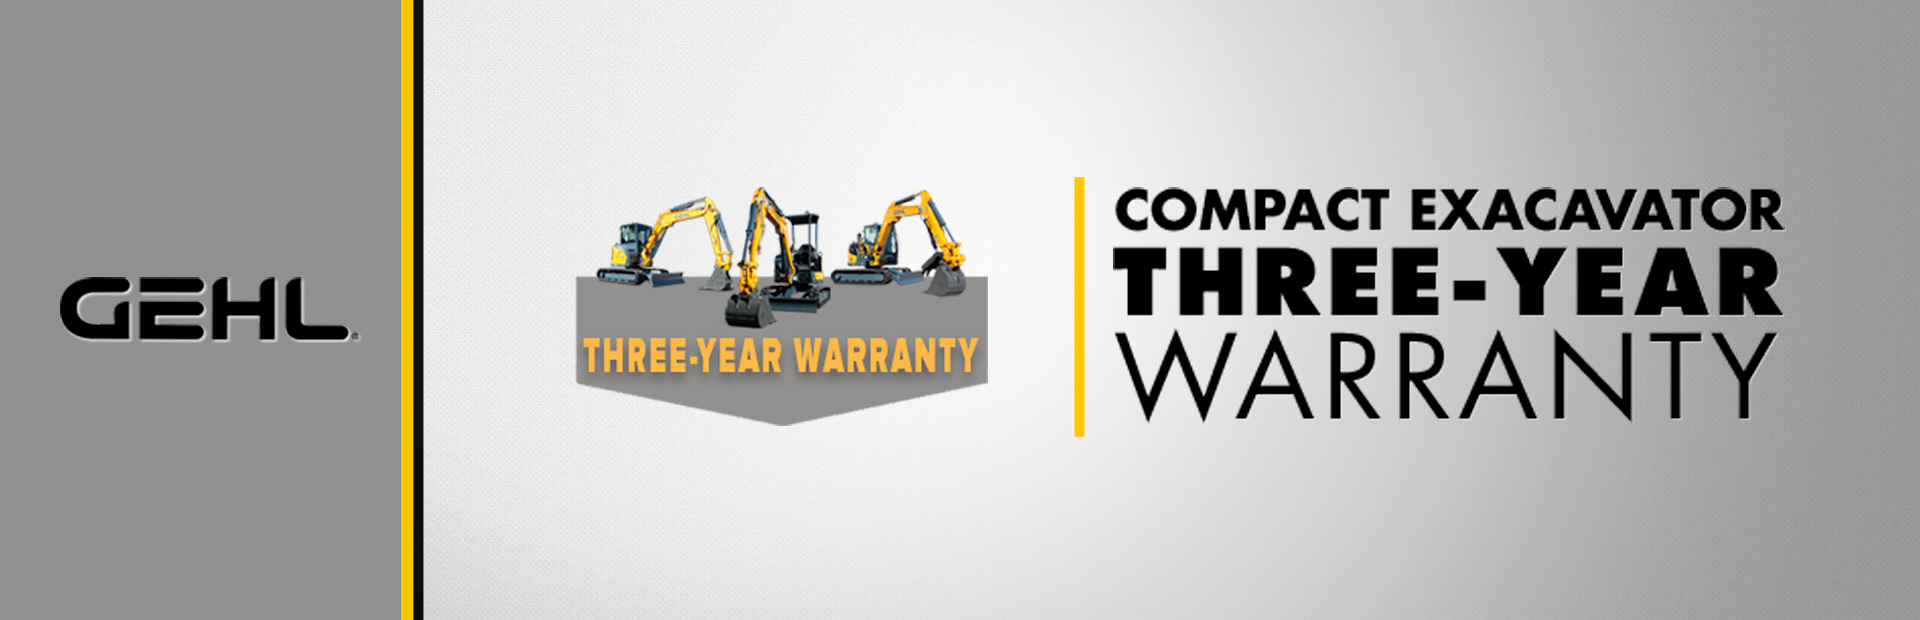 Gehl: Compact Exacavator - Three-year Warranty